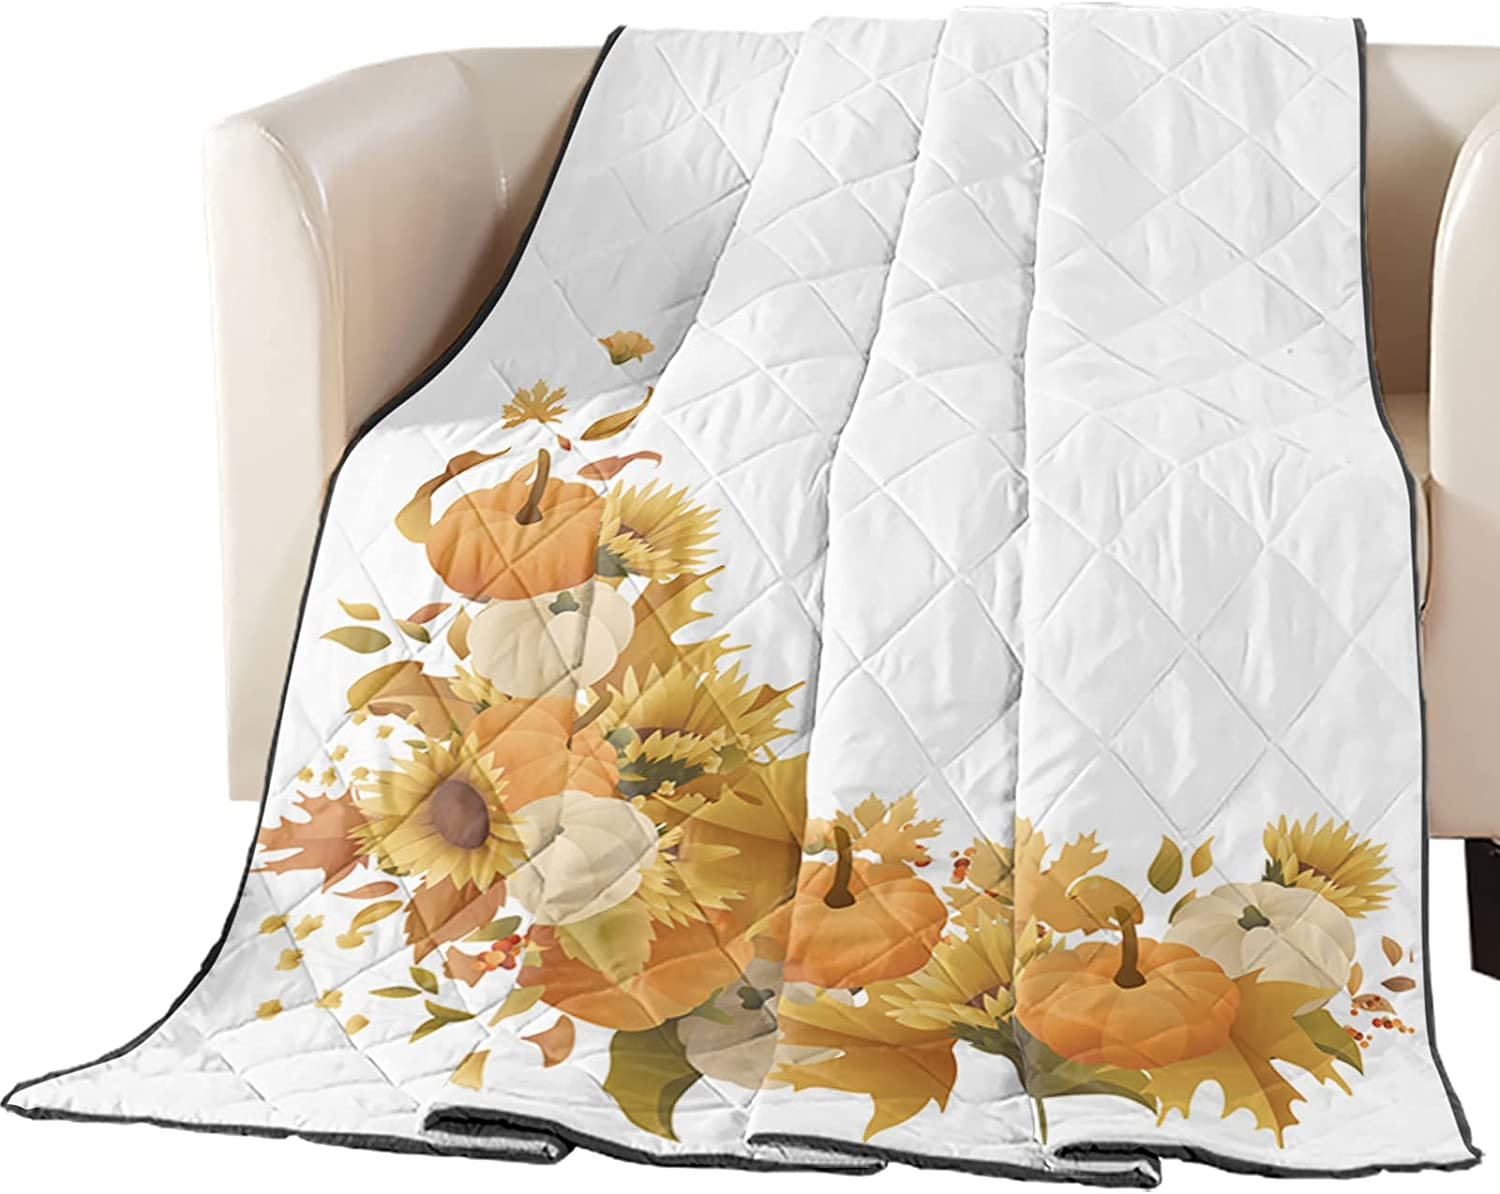 Reversible Down Alternative Discount is also underway Comforter Pumpkins and Style Country Seasonal Wrap Introduction